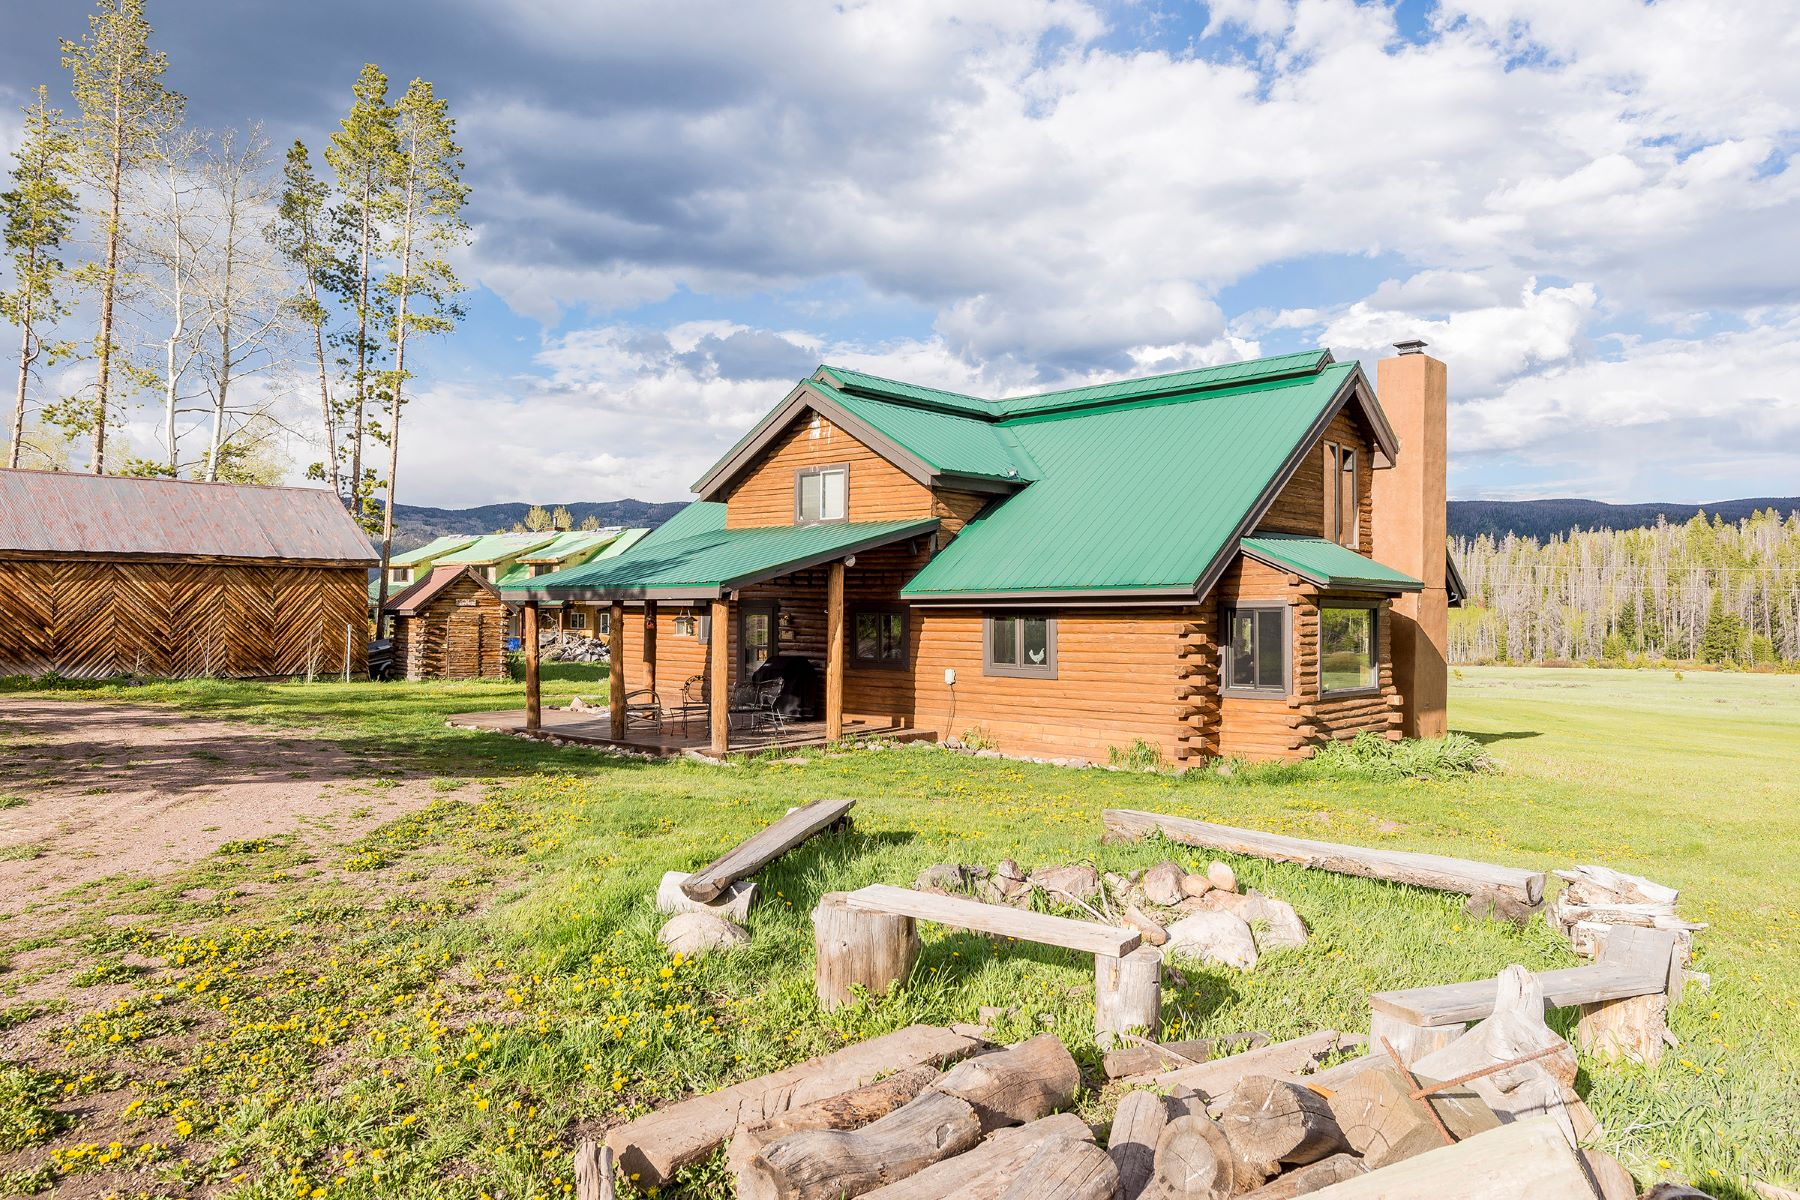 Single Family Home for Sale at Pristine Natural Surroundings in Stagecoach, CO 33015 Ramuda Trail Oak Creek, Colorado, 80467 United States